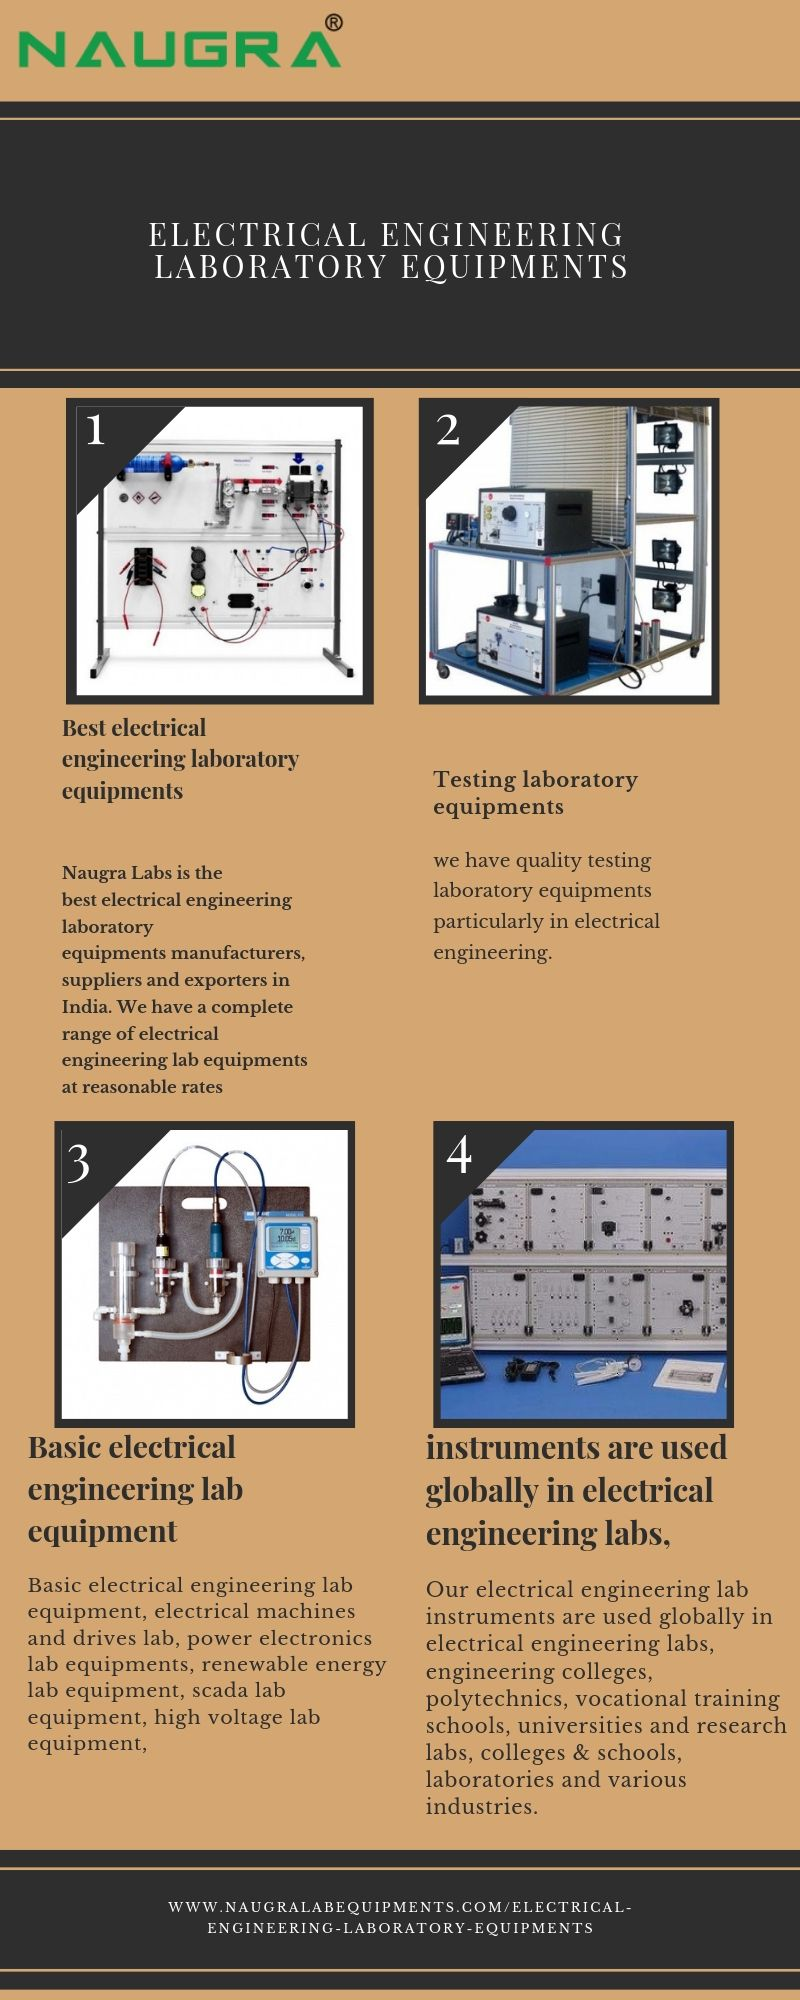 Pin By Love For All On Best For All Electrical Engineering Lab Equipment Engineering